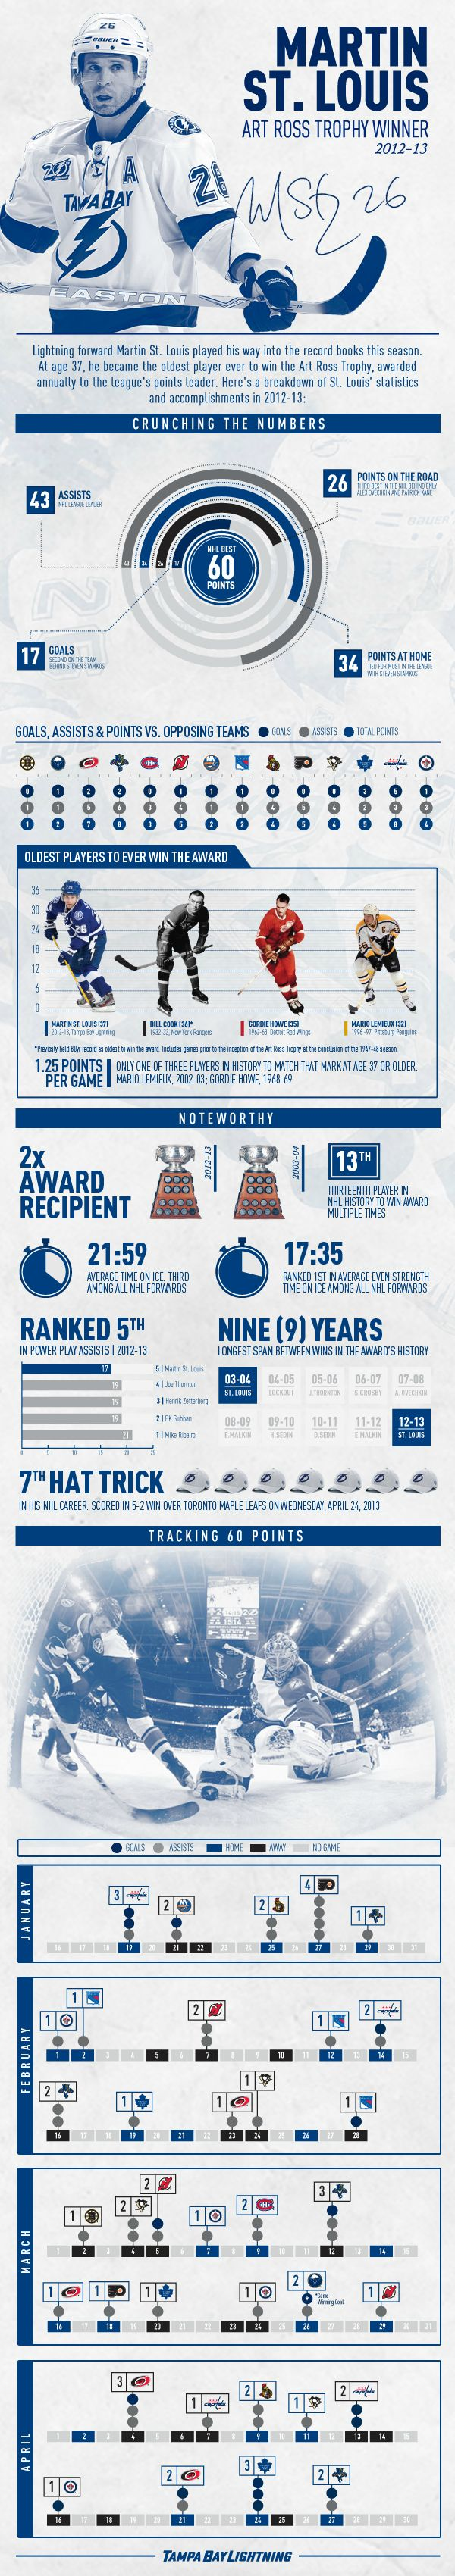 Marty St. Louis 2013 Season Stats. It's too bad that EA ...